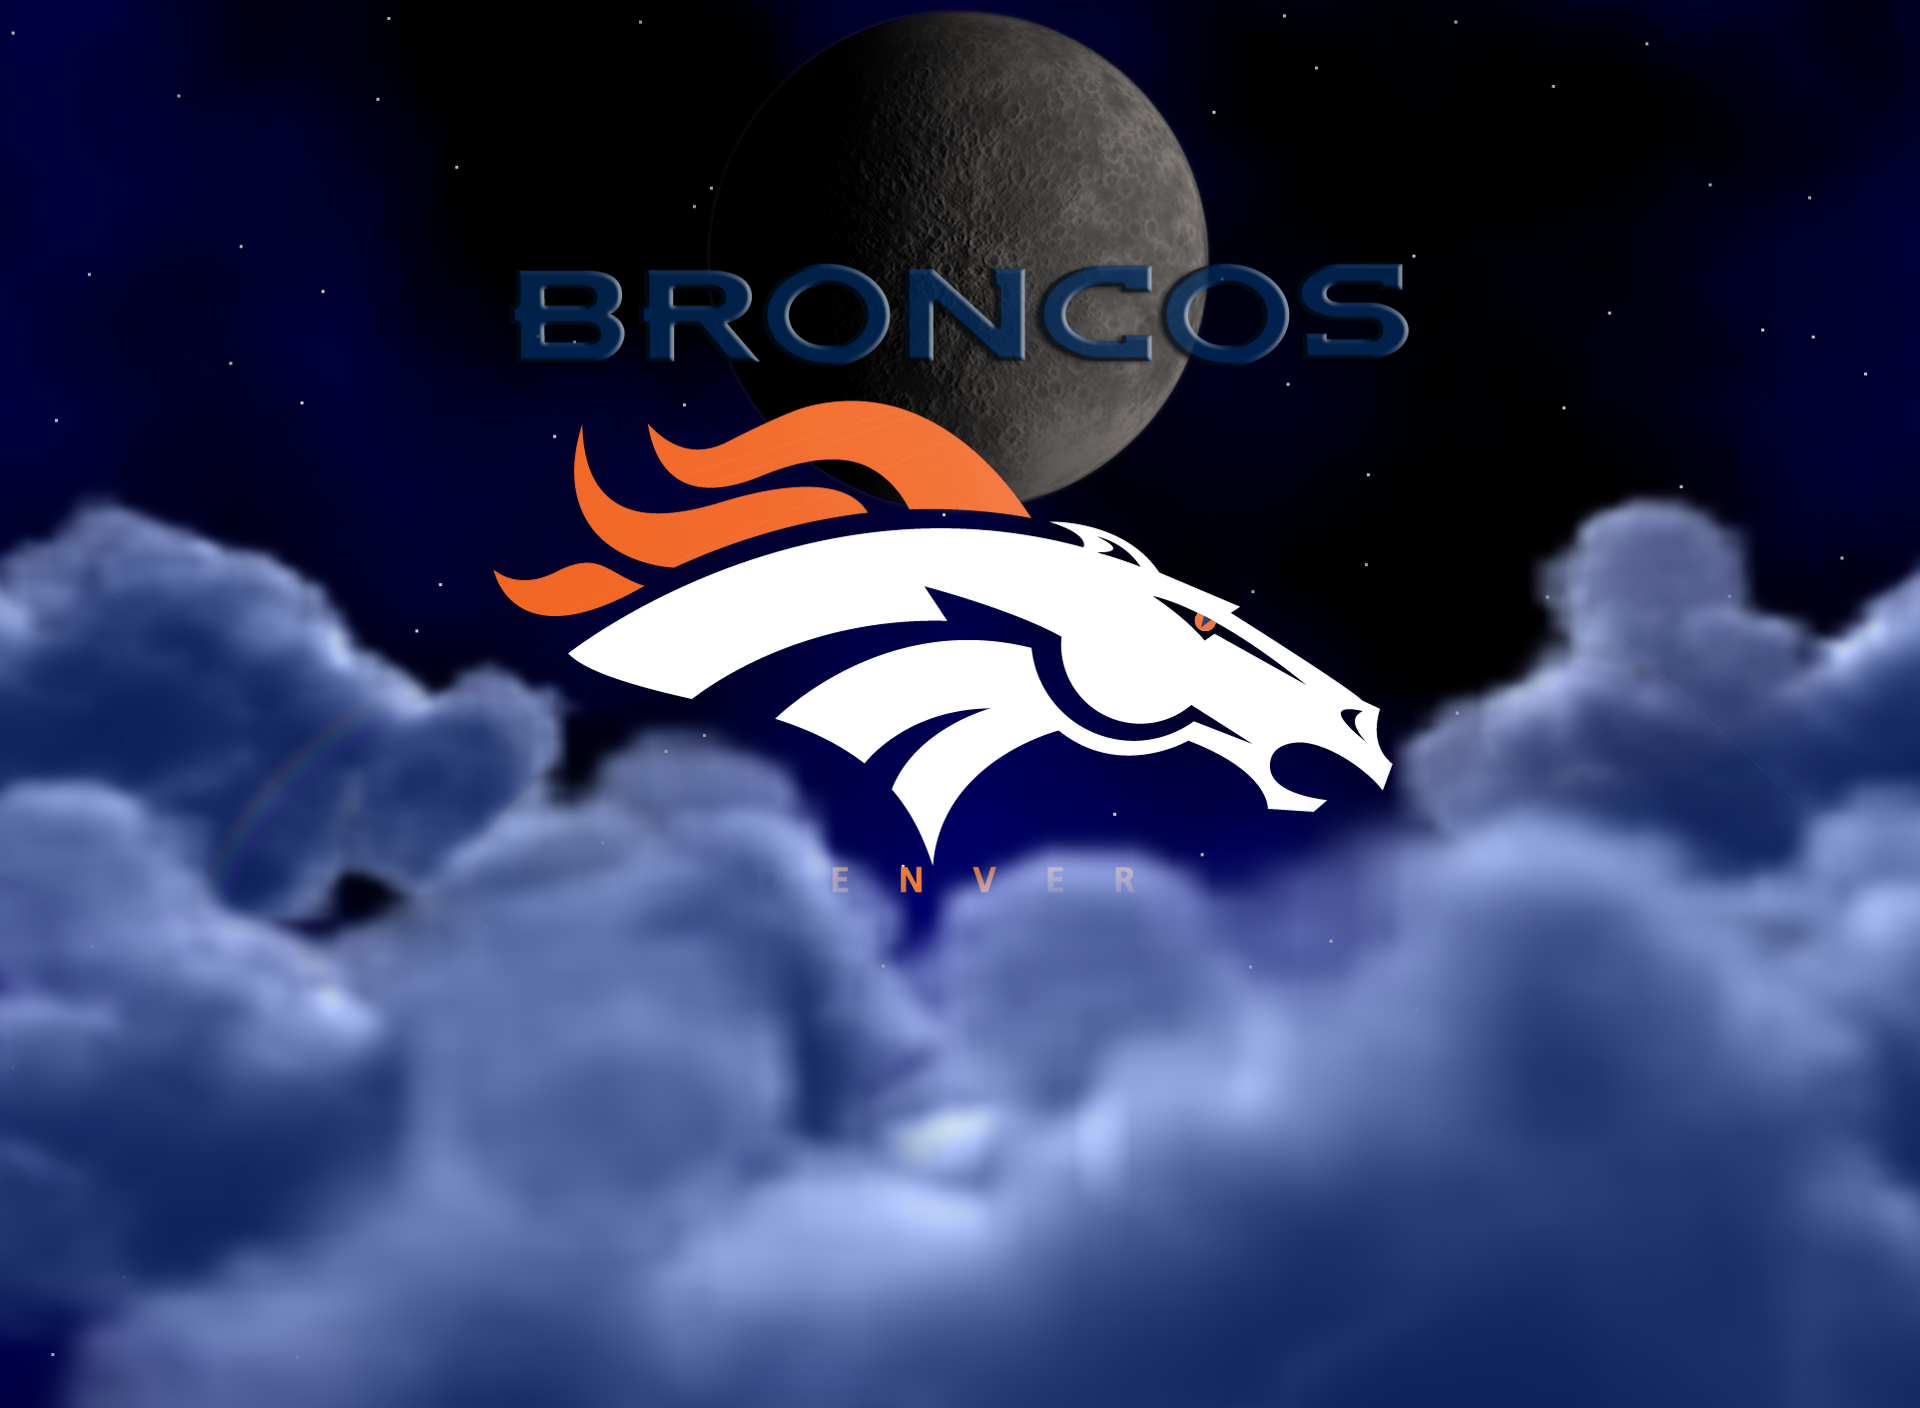 Wallpapers by wicked shadows denver broncos above the clouds wallpaper saturday august 25 2012 voltagebd Gallery